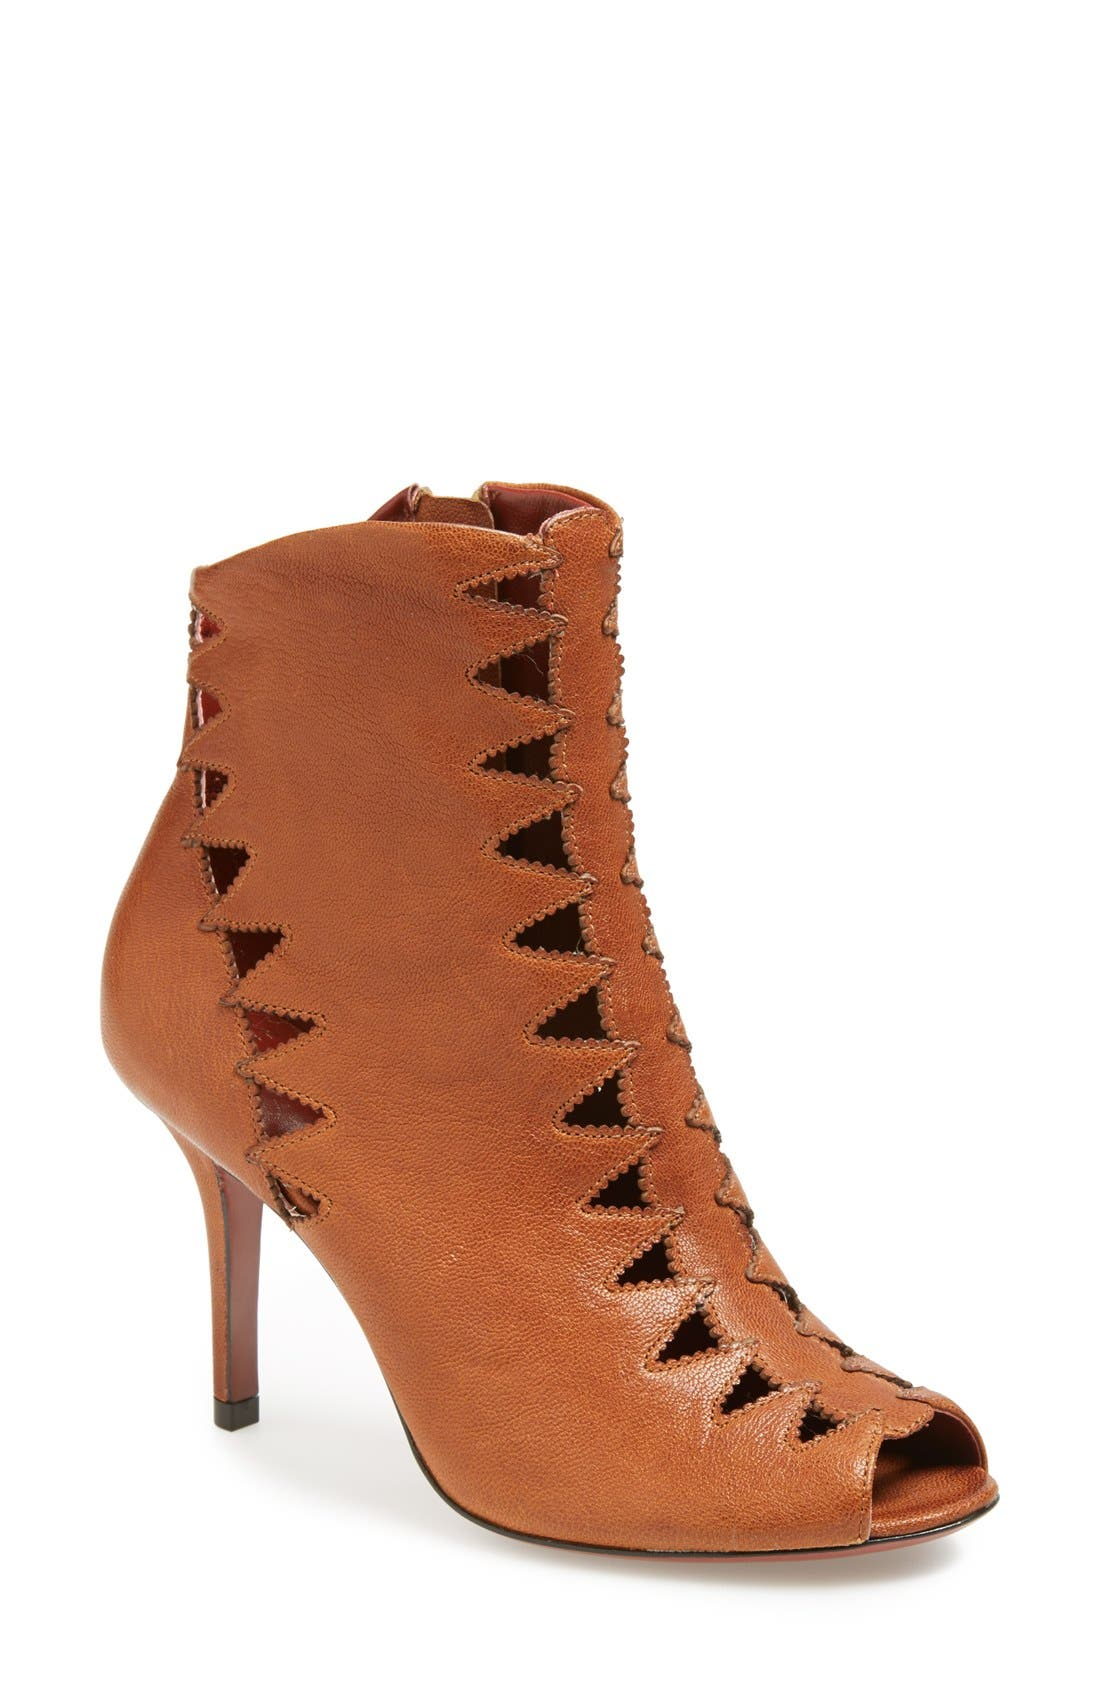 Alternate Image 1 Selected - Aerin 'Carine' Peep Toe Leather Bootie (Women)